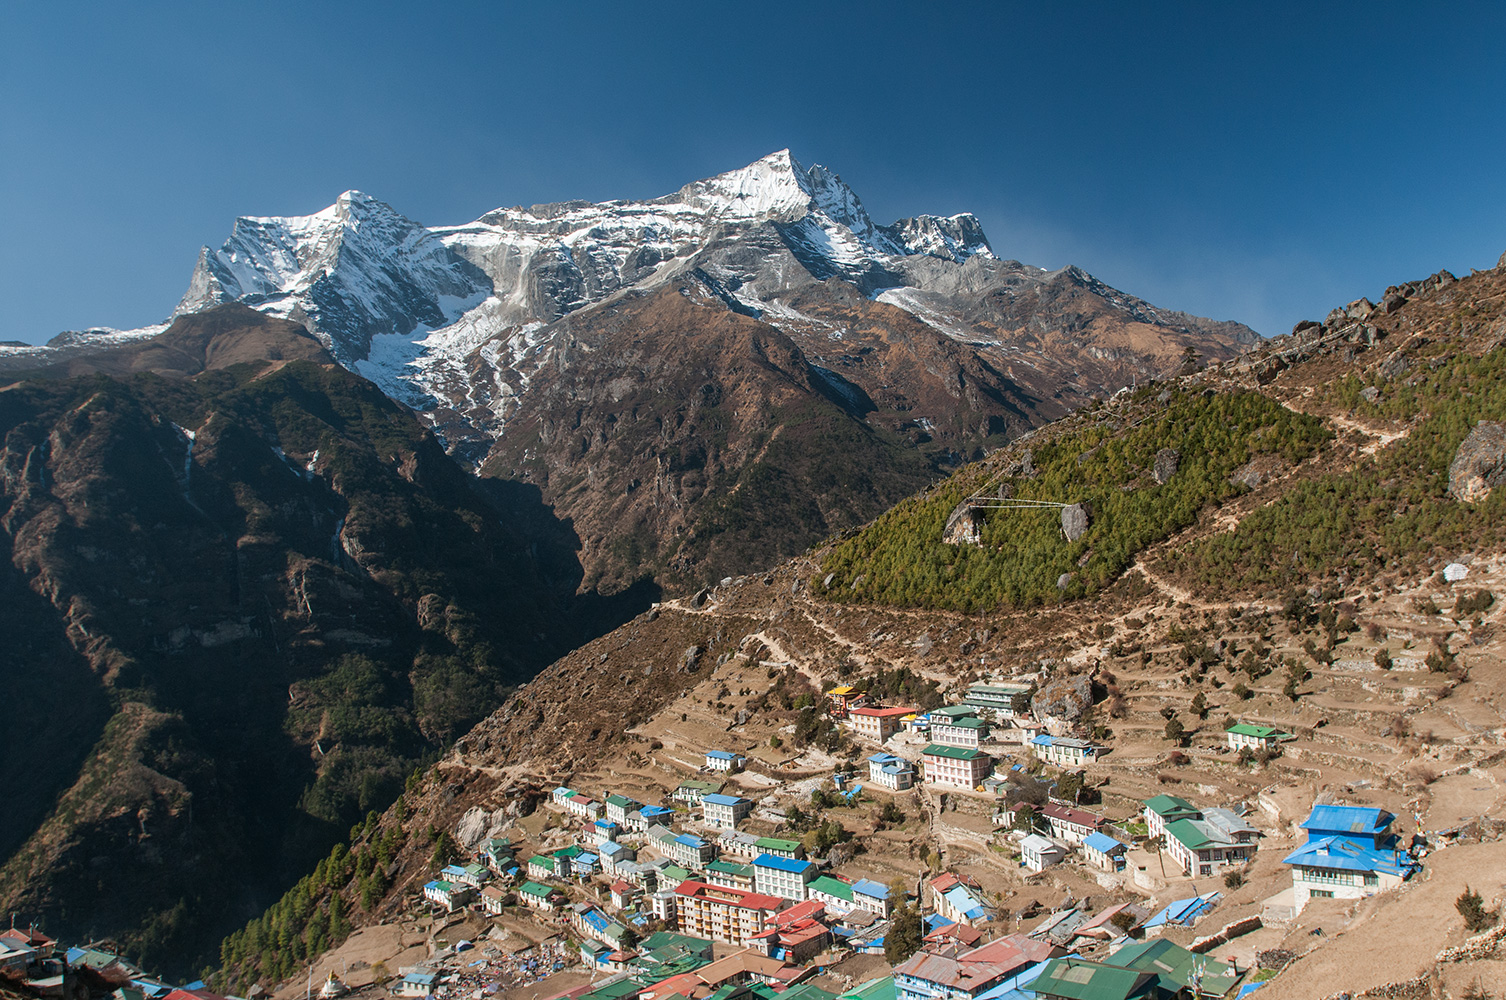 The capital and administrative centre of the Khumbu, Namche is at an altitude of 3440m. The peak in the background is Kongde Ri (6187m). The townhas grown rapidly in recent years as the burgeoning trekking industry bring ever increasing numbers of toursists to the area. Many visitors spend two or tree nights here to acclimatise to the altitude pefore proceeding up valley.Nikon D300, 17-35mm